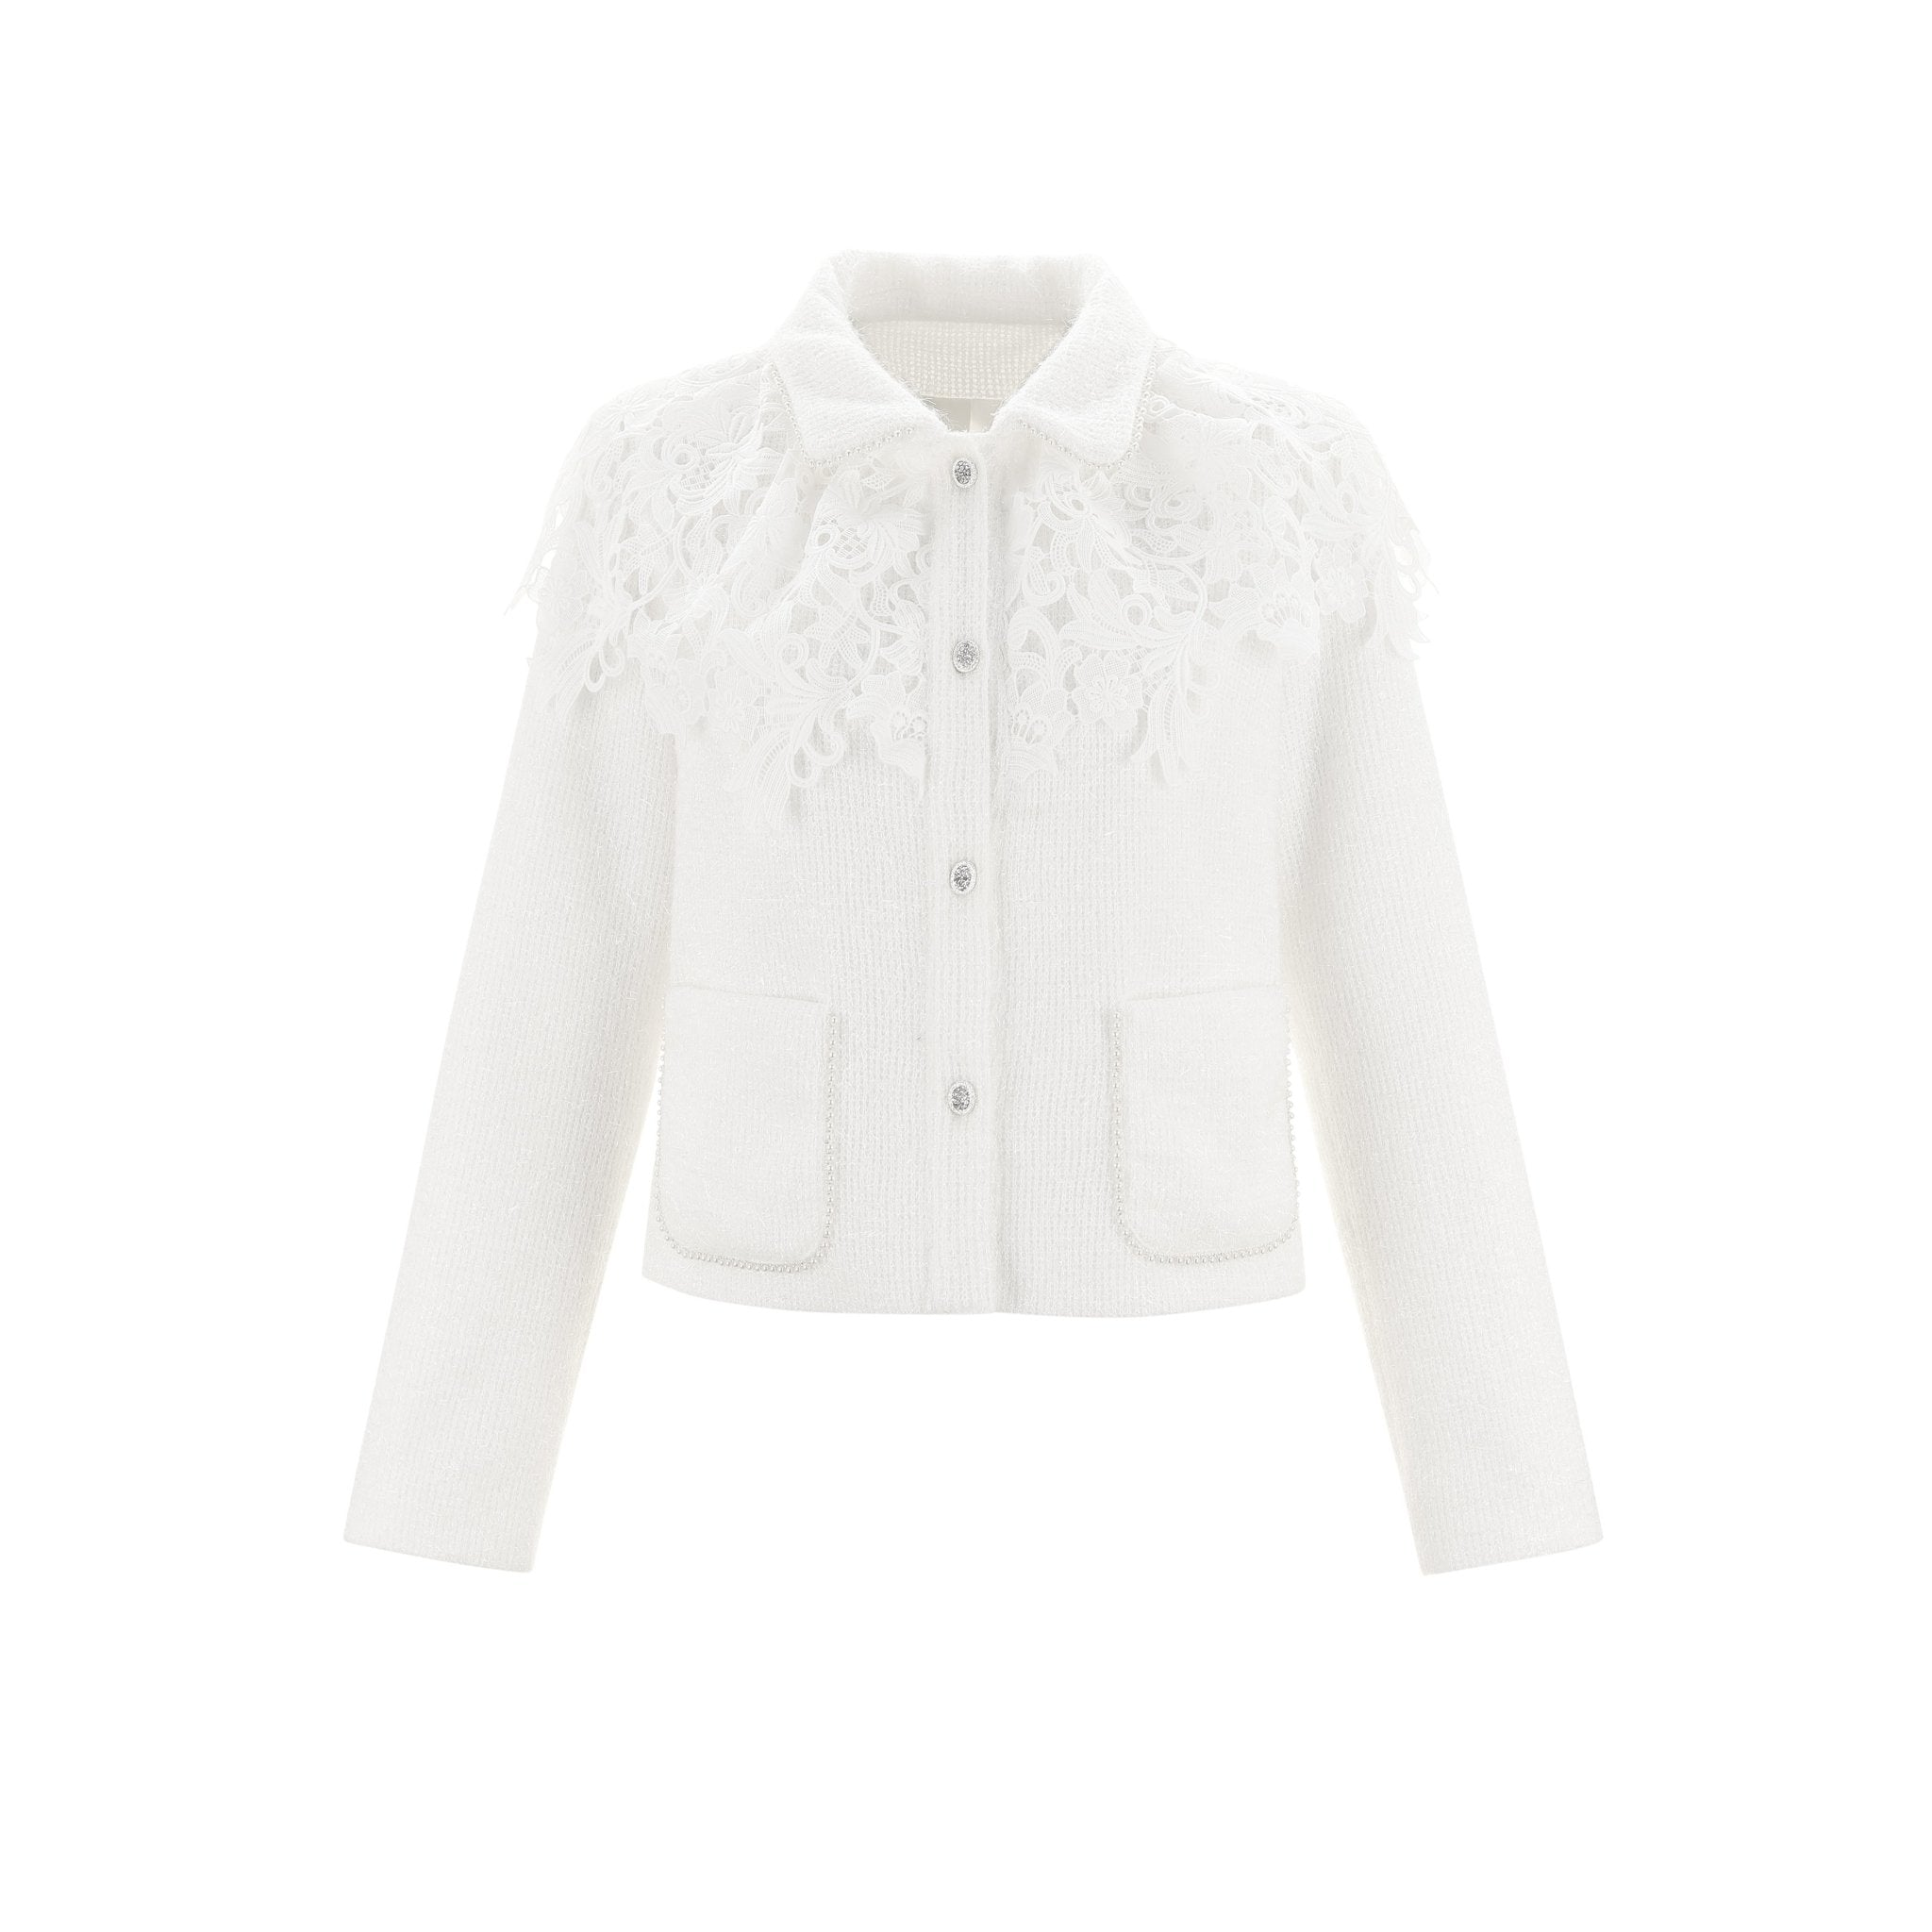 WARM AID White Lace Blazer Jacket | MADA IN CHINA